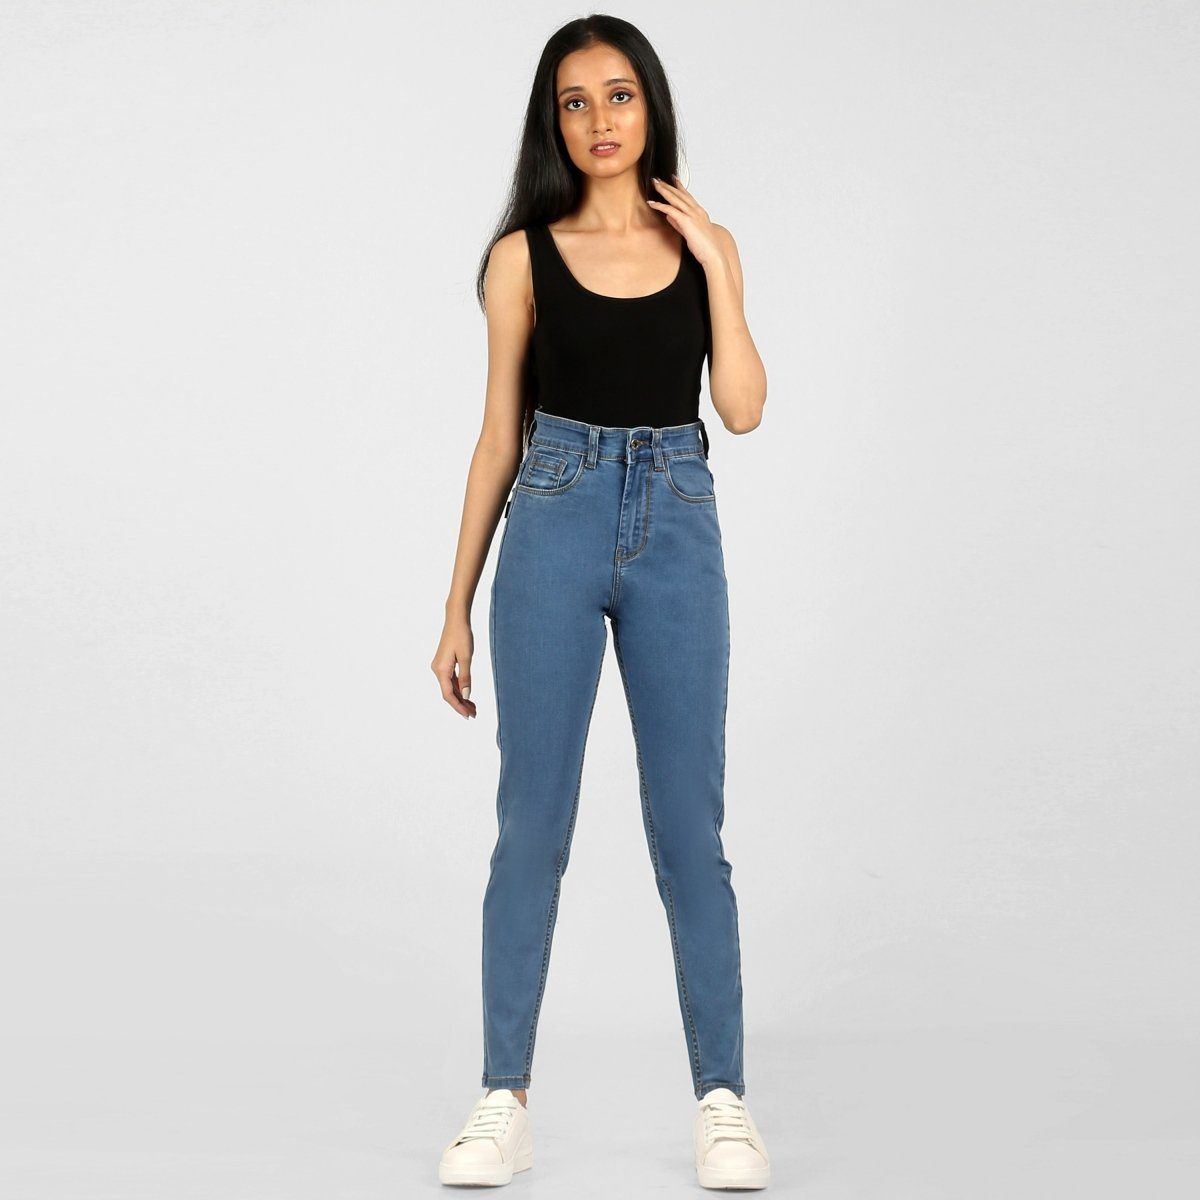 The 70s Slim Fit Hazy Blue High Waist Jeans by Madish